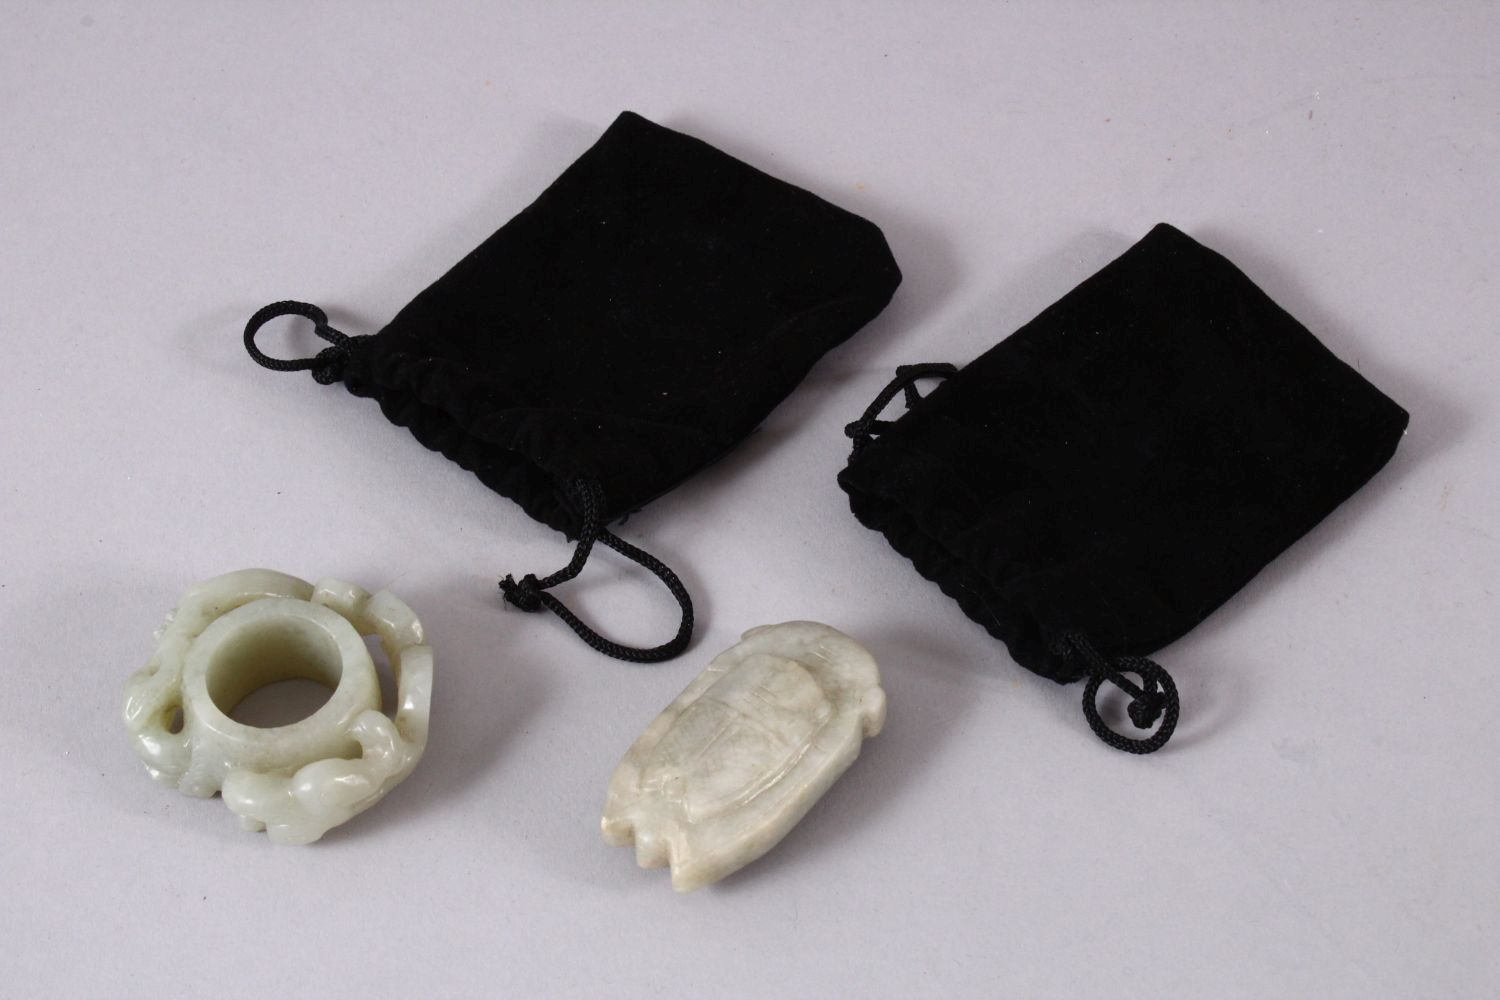 TWO CHINESE CARVED JADE PENDANTS, one carved with chilong, 5cm, and one carved int he form of a - Image 5 of 5